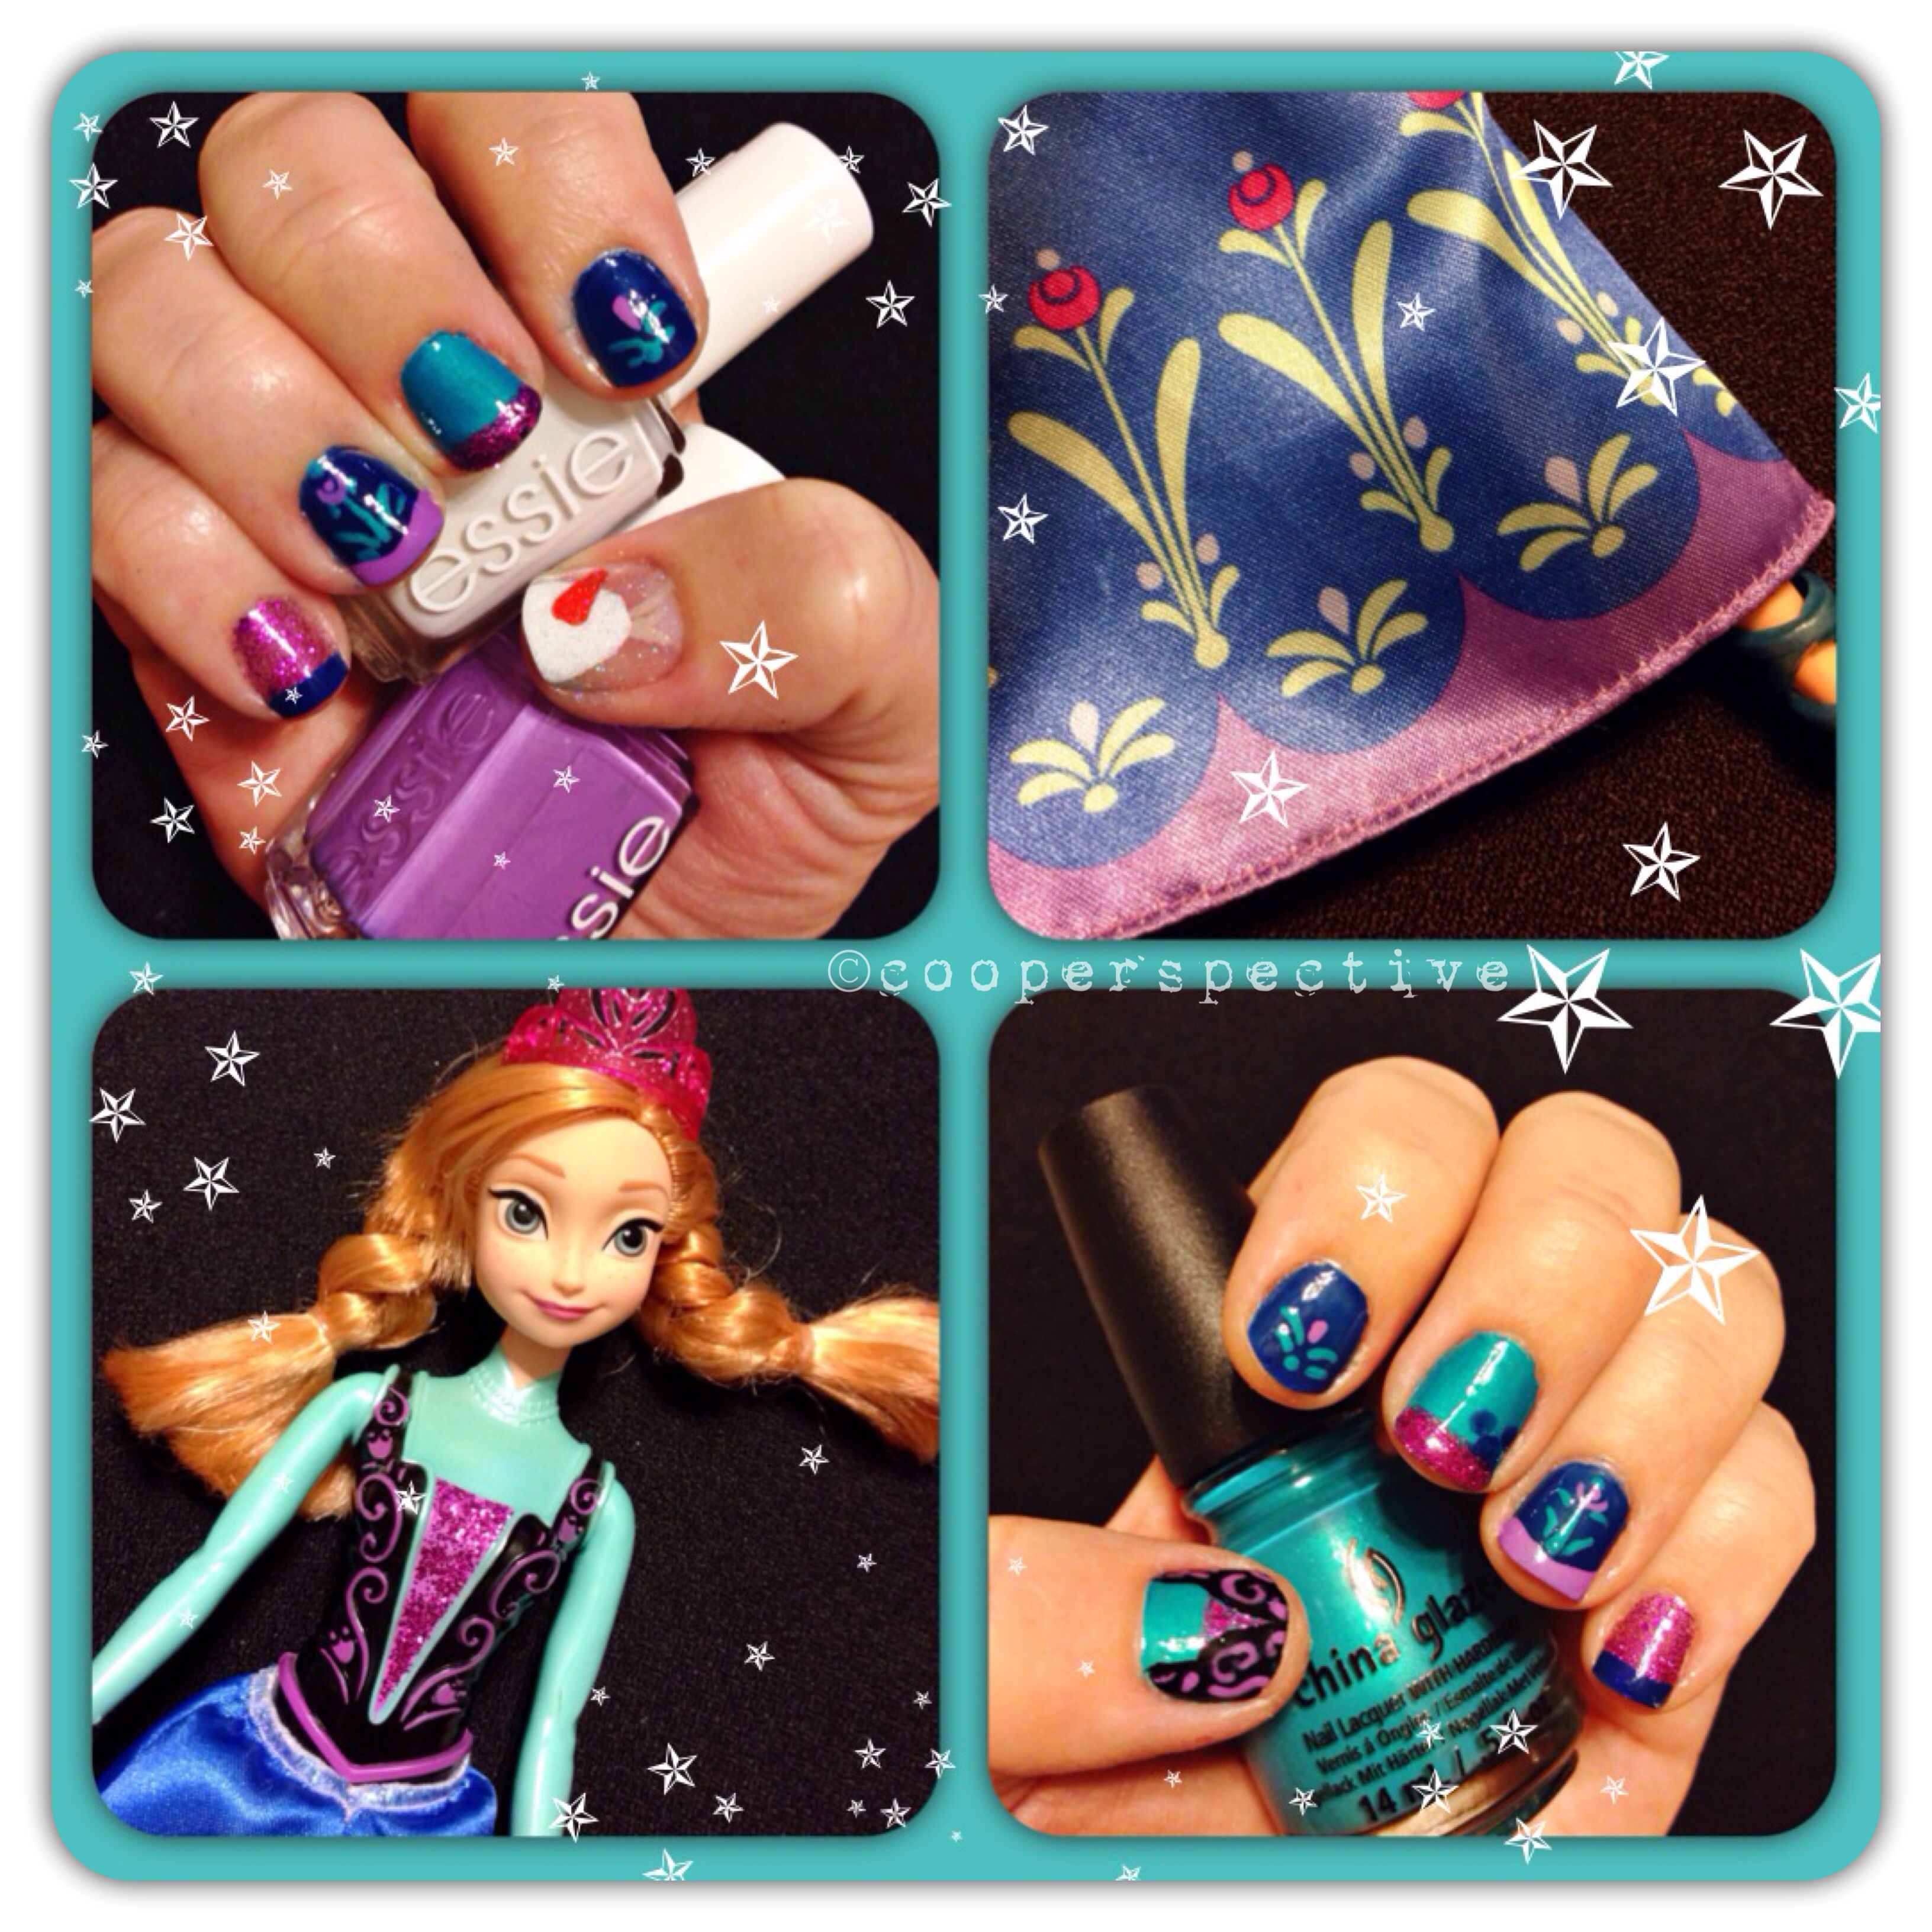 Take two on my frozen nails attempt by using the designs and colors ...